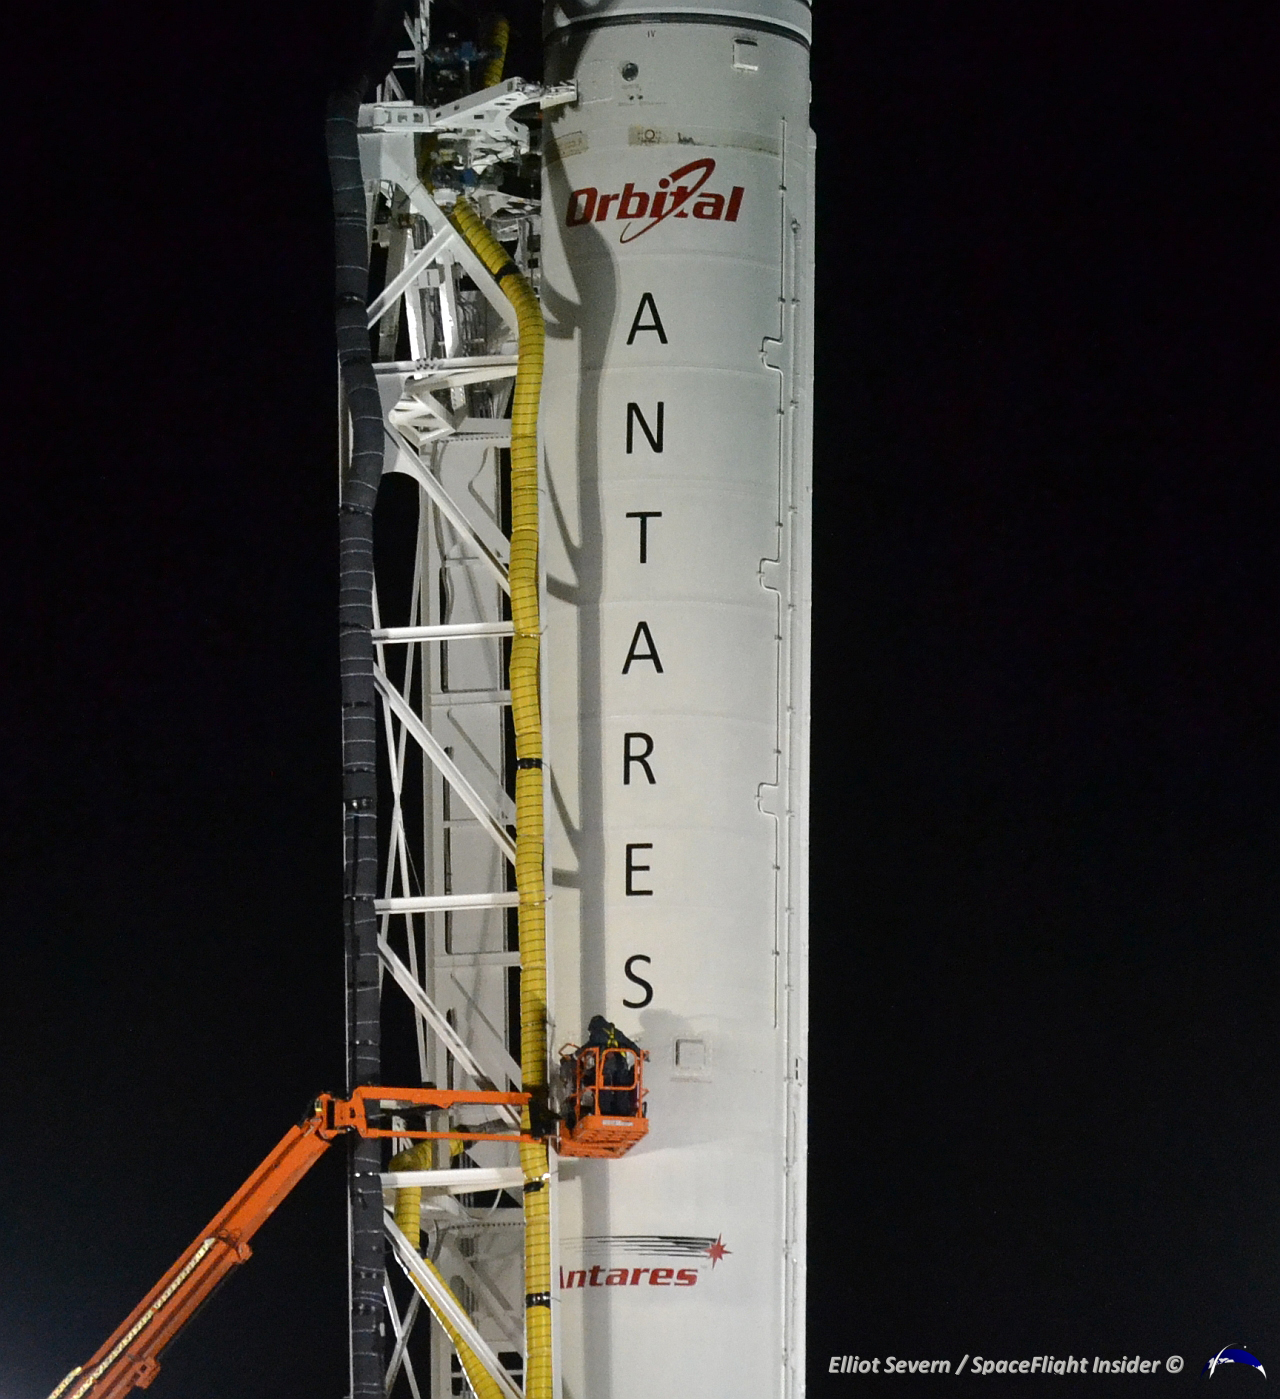 Workers preparing Antares for launch give a sense of scale. Photo Credit: Elliot Severn / SpaceFlight Insider